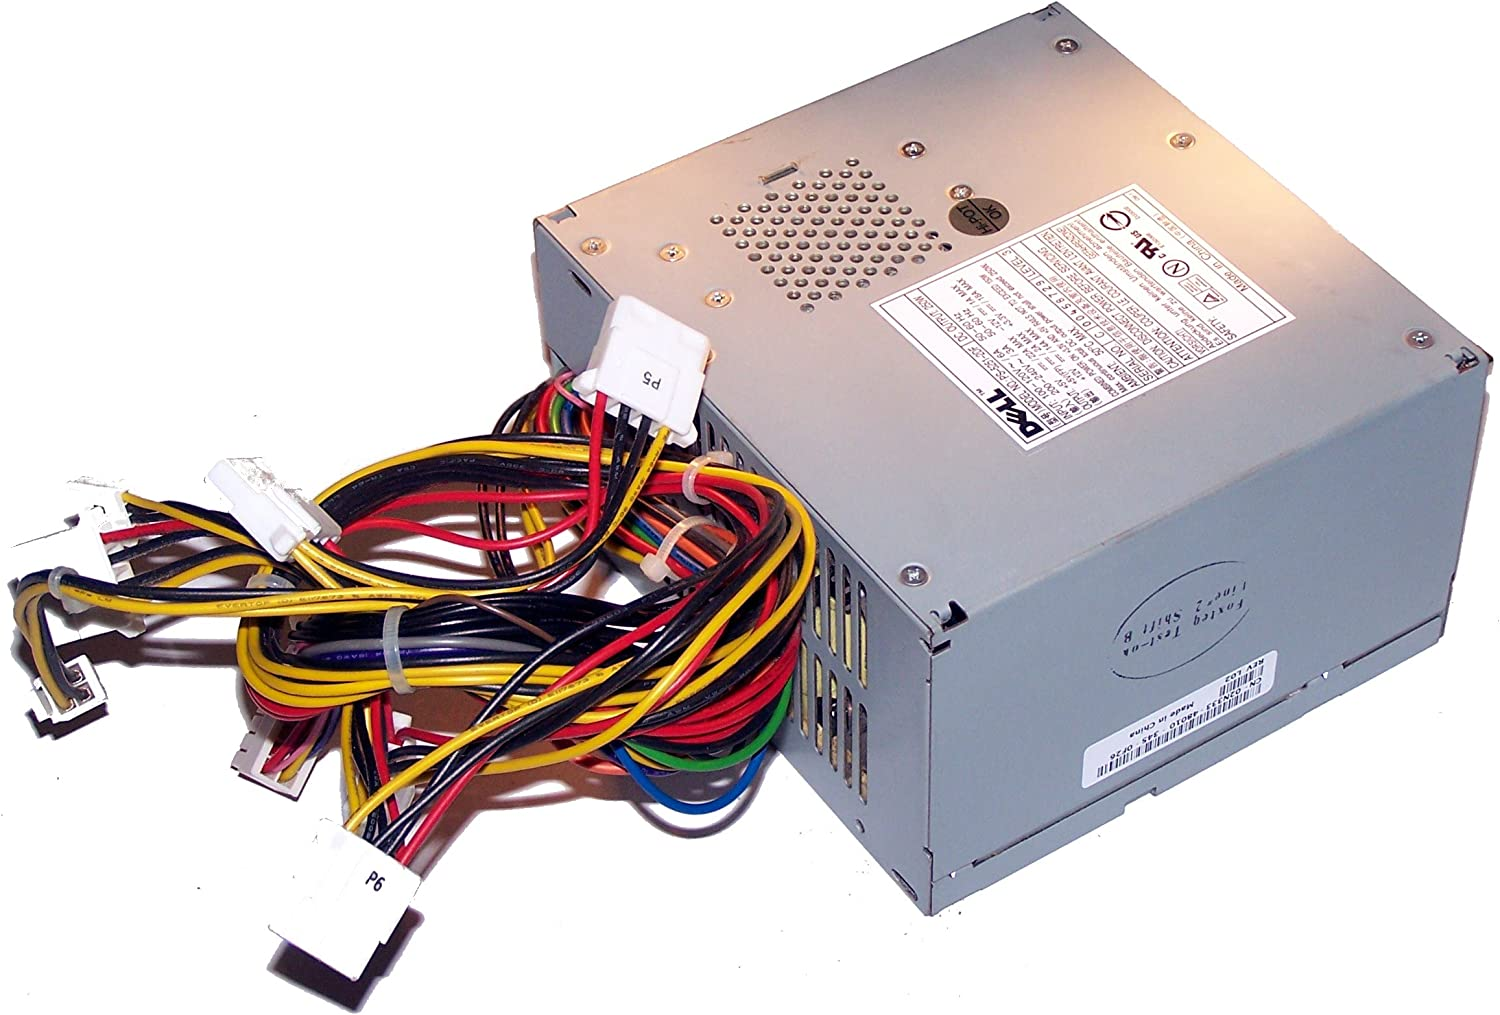 250W ATX Powersupply WITH P4 POWER DELL PS-5251-2DF